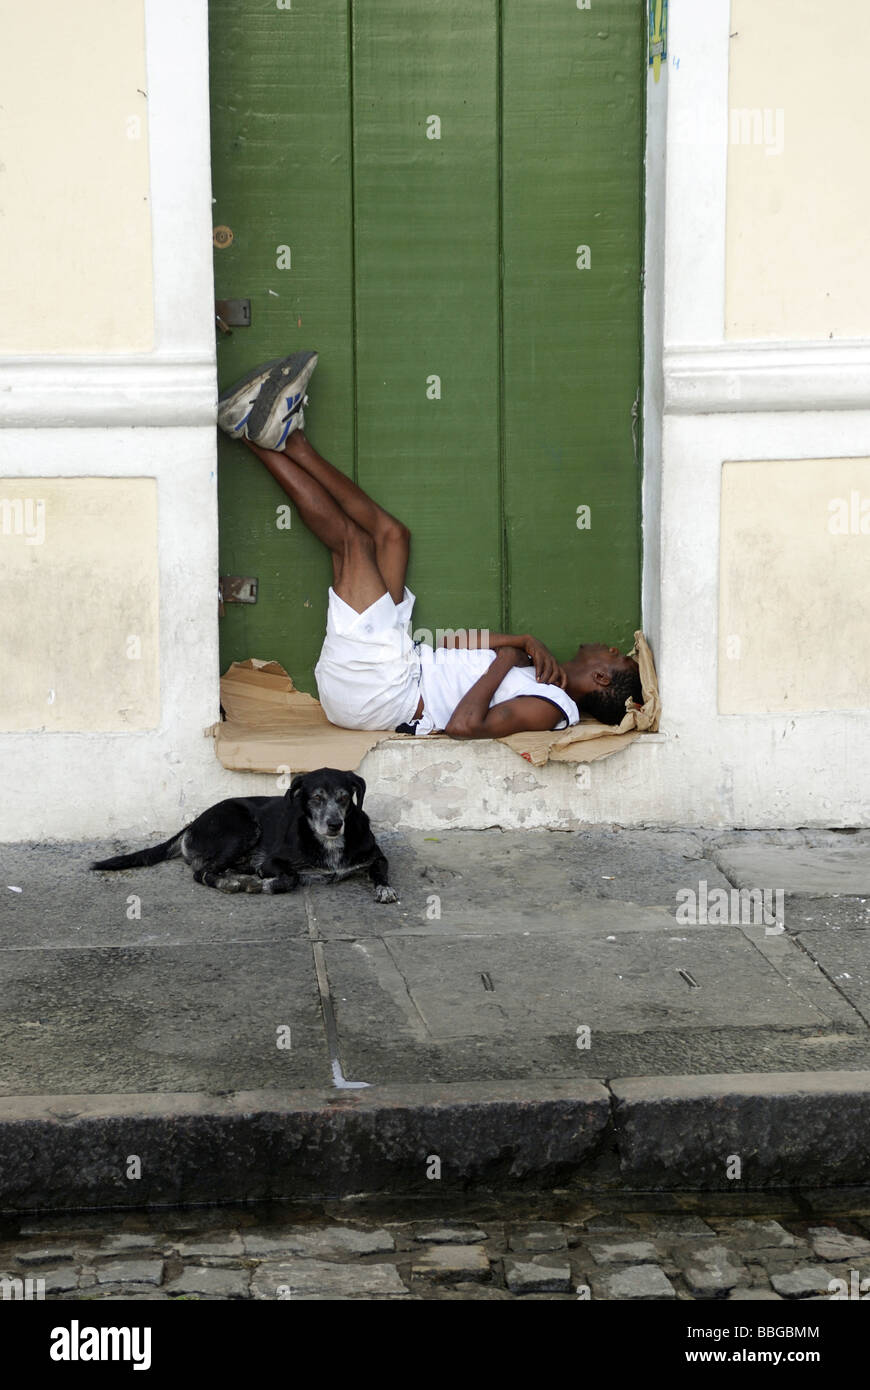 Homeless man sleeping in a house entrance guarded by his dog, Salvador, Bahia, Brazil, South America - Stock Image